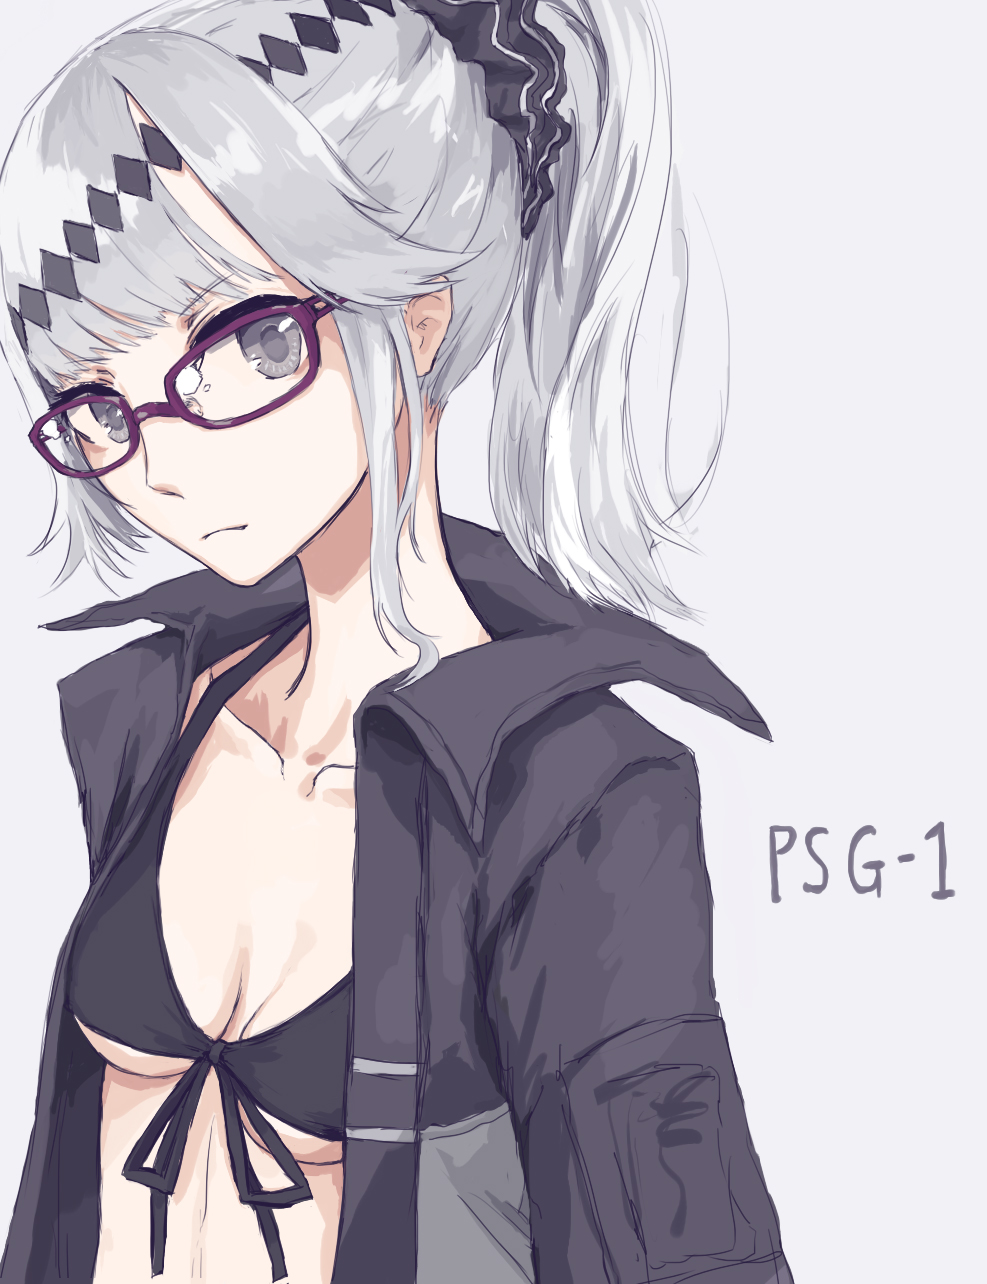 1girl bikini_top black_bikini_top black_jacket breasts character_name cleavage closed_mouth collarbone eyebrows_visible_through_hair girls_frontline glasses grey_hair hair_between_eyes hair_ornament head_tilt highres jacket looking_at_viewer medium_breasts open_clothes open_jacket papaia_(quentingqoo) ponytail psg-1_(girls_frontline) purple-framed_eyewear scrunchie sidelocks solo